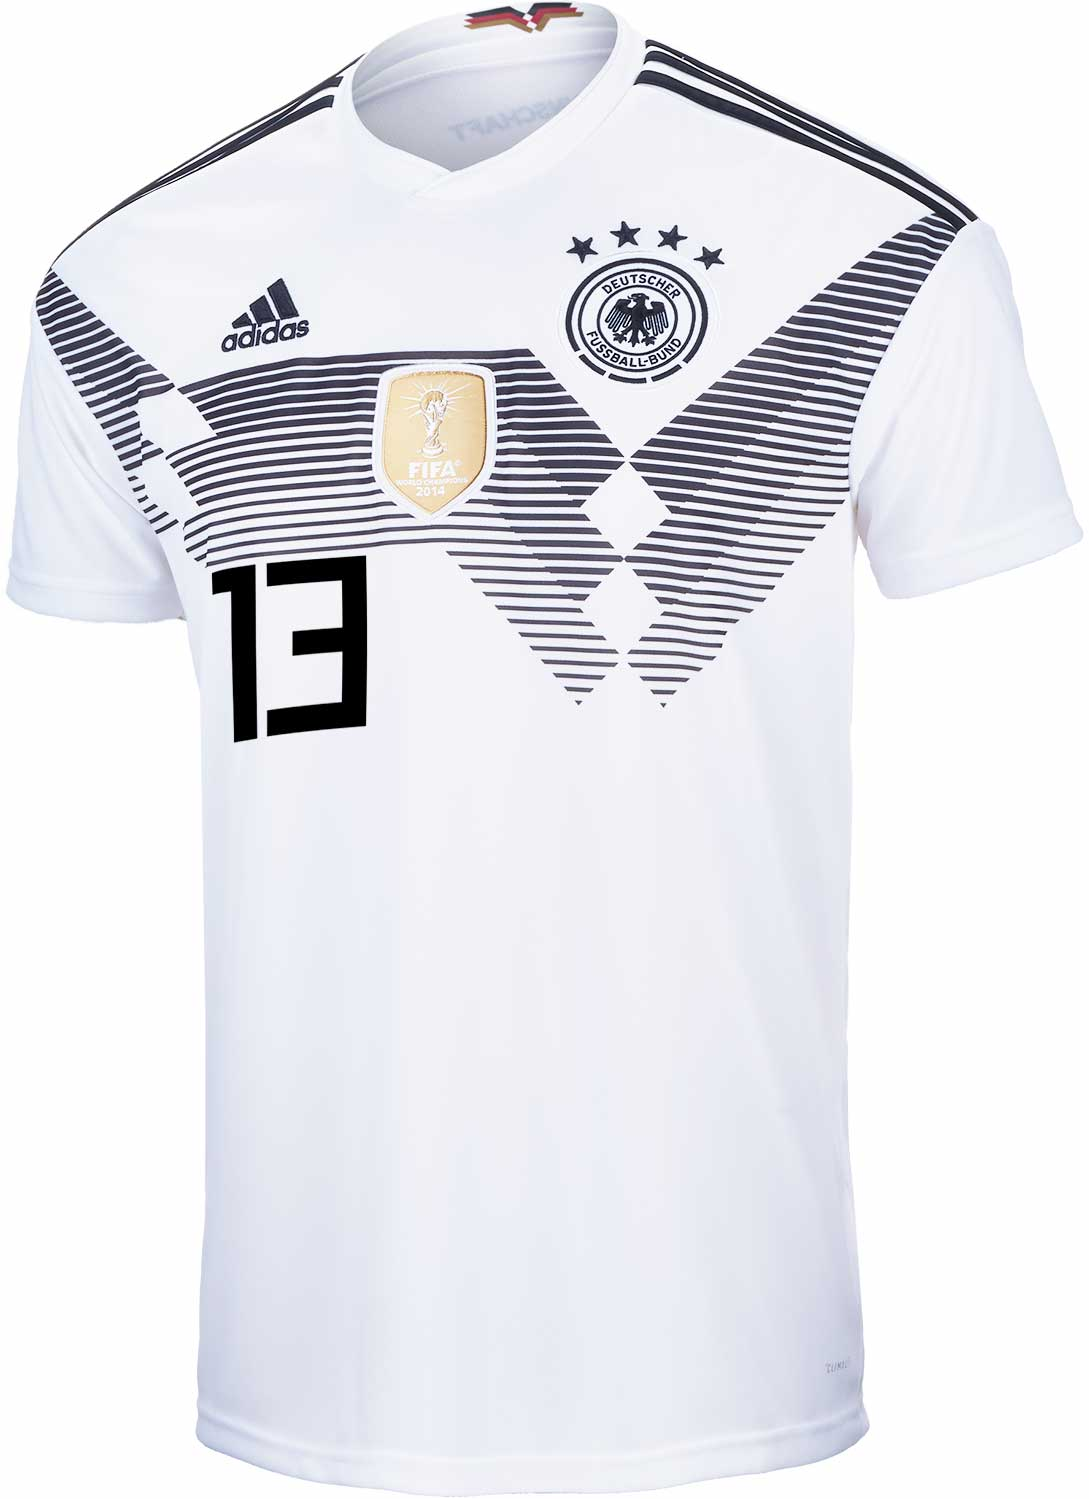 new product a7ef8 5e6c5 adidas Thomas Muller Germany Home Jersey 2018-19 - SoccerPro